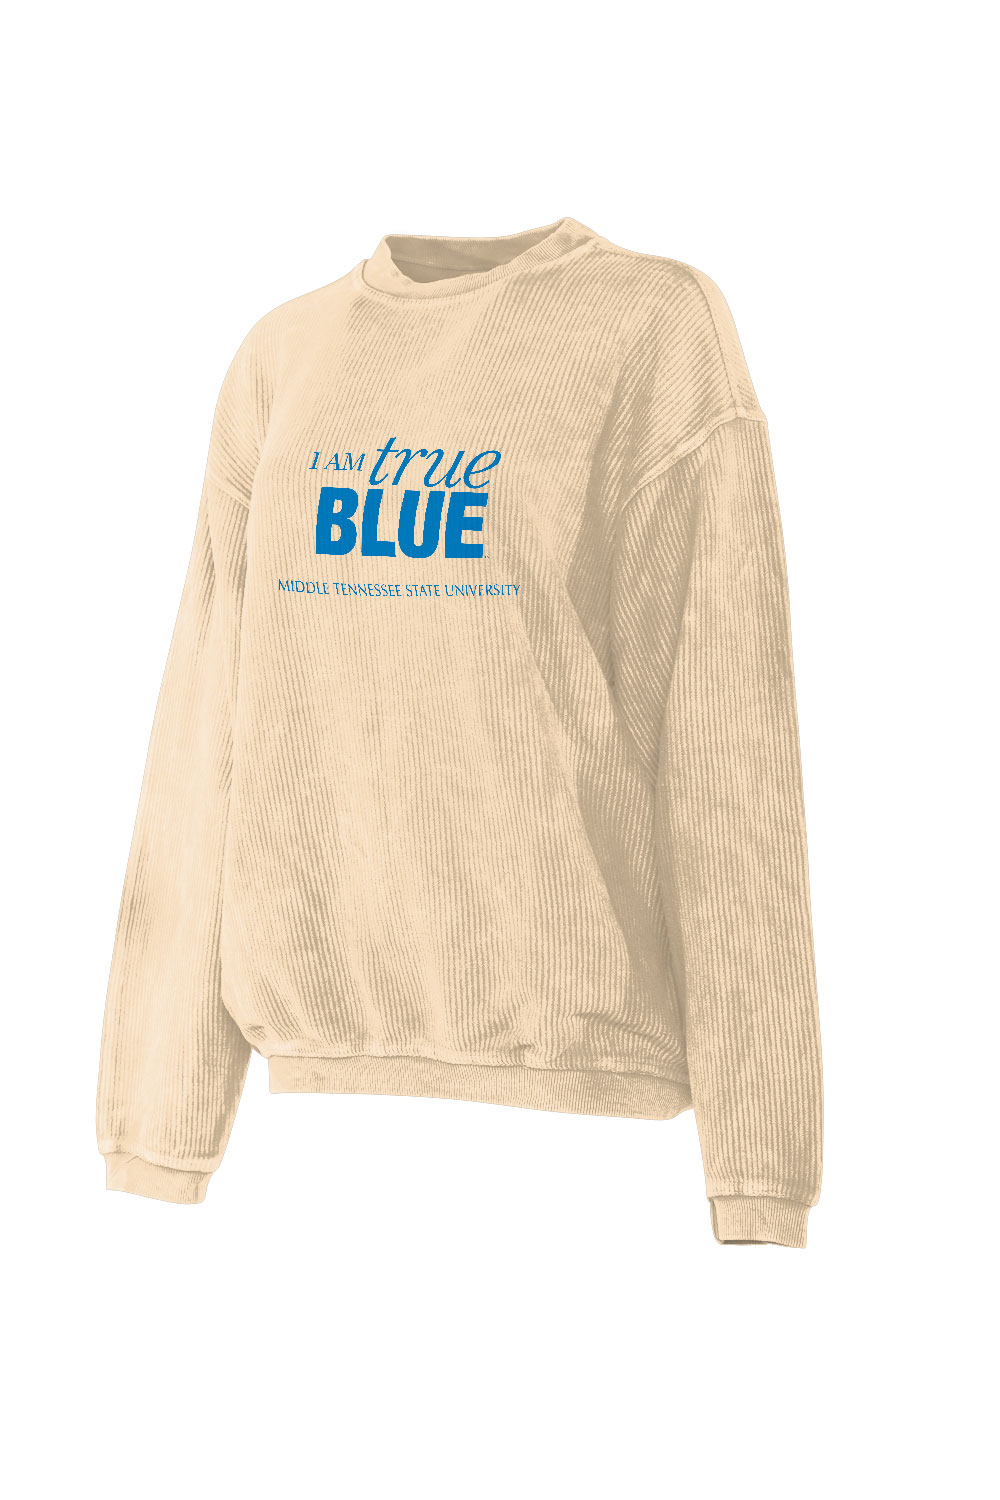 I Am True Blue Women's Corded Sweatshirt